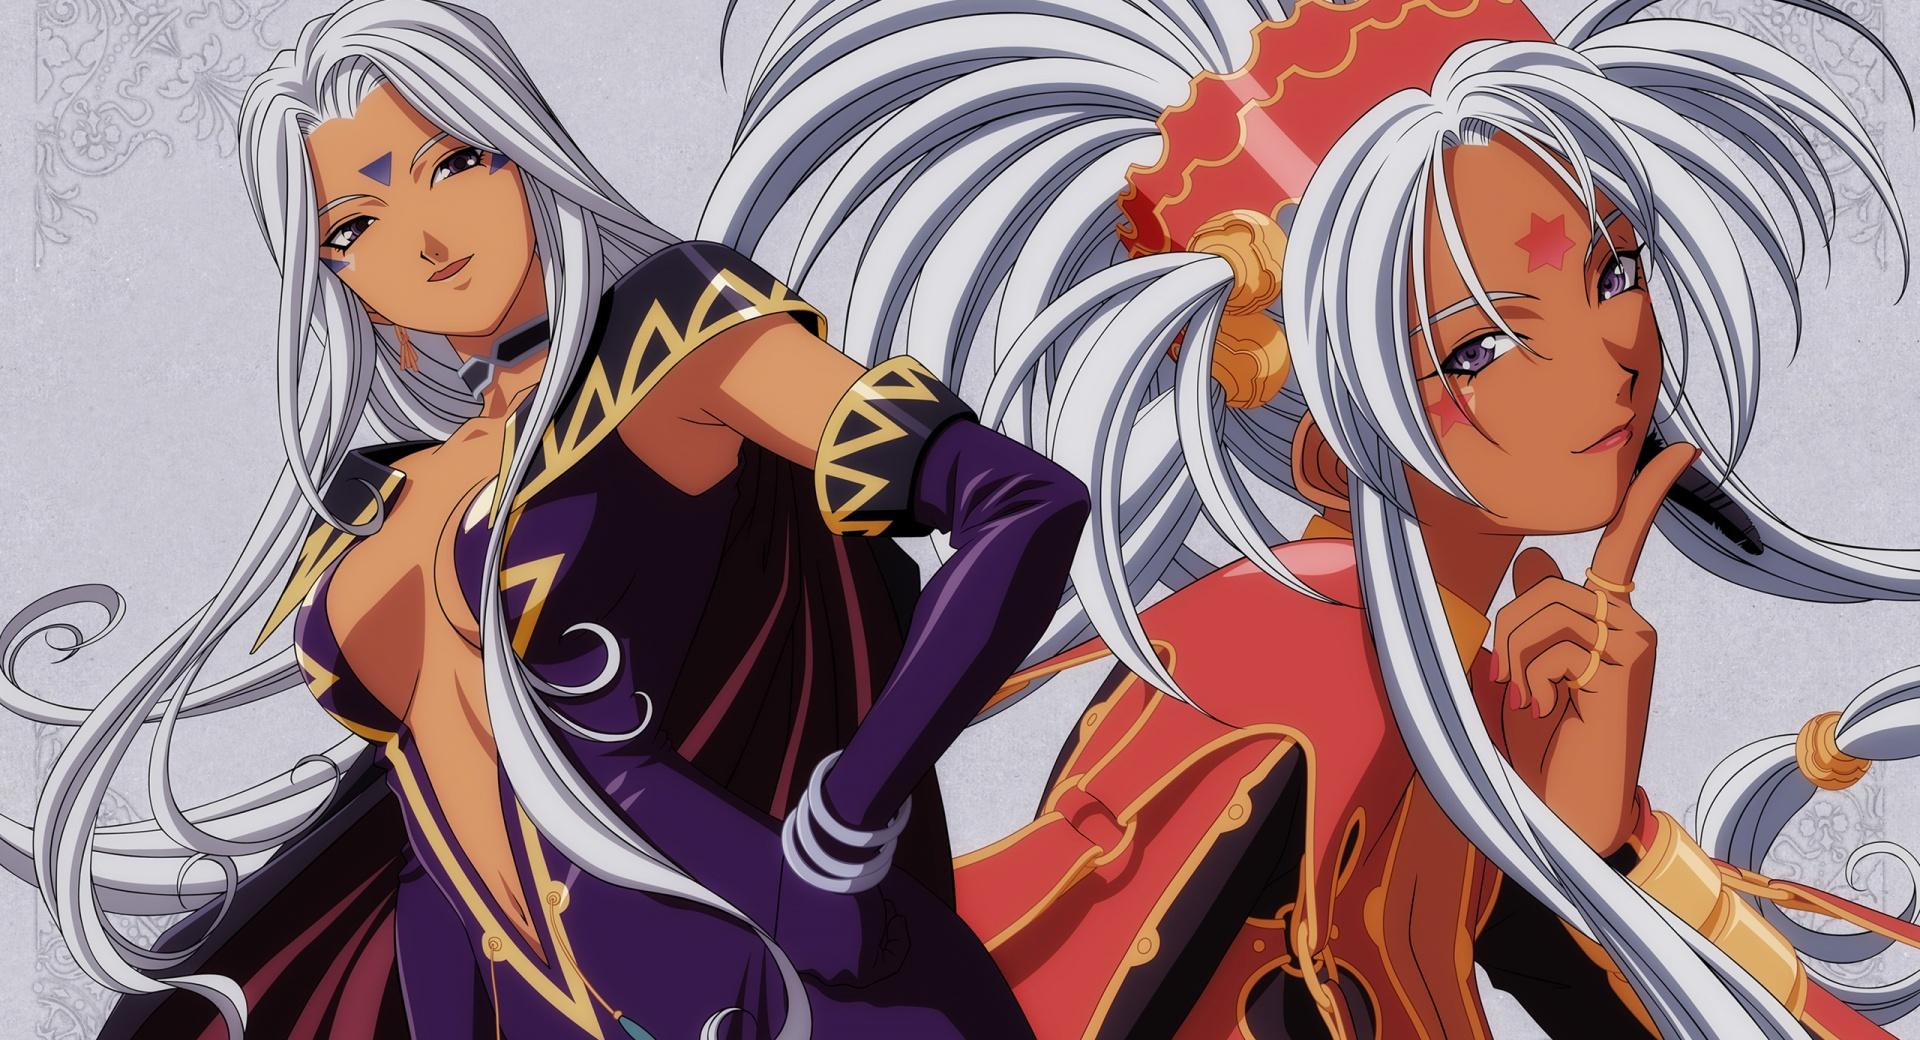 Hild And Urd wallpapers HD quality